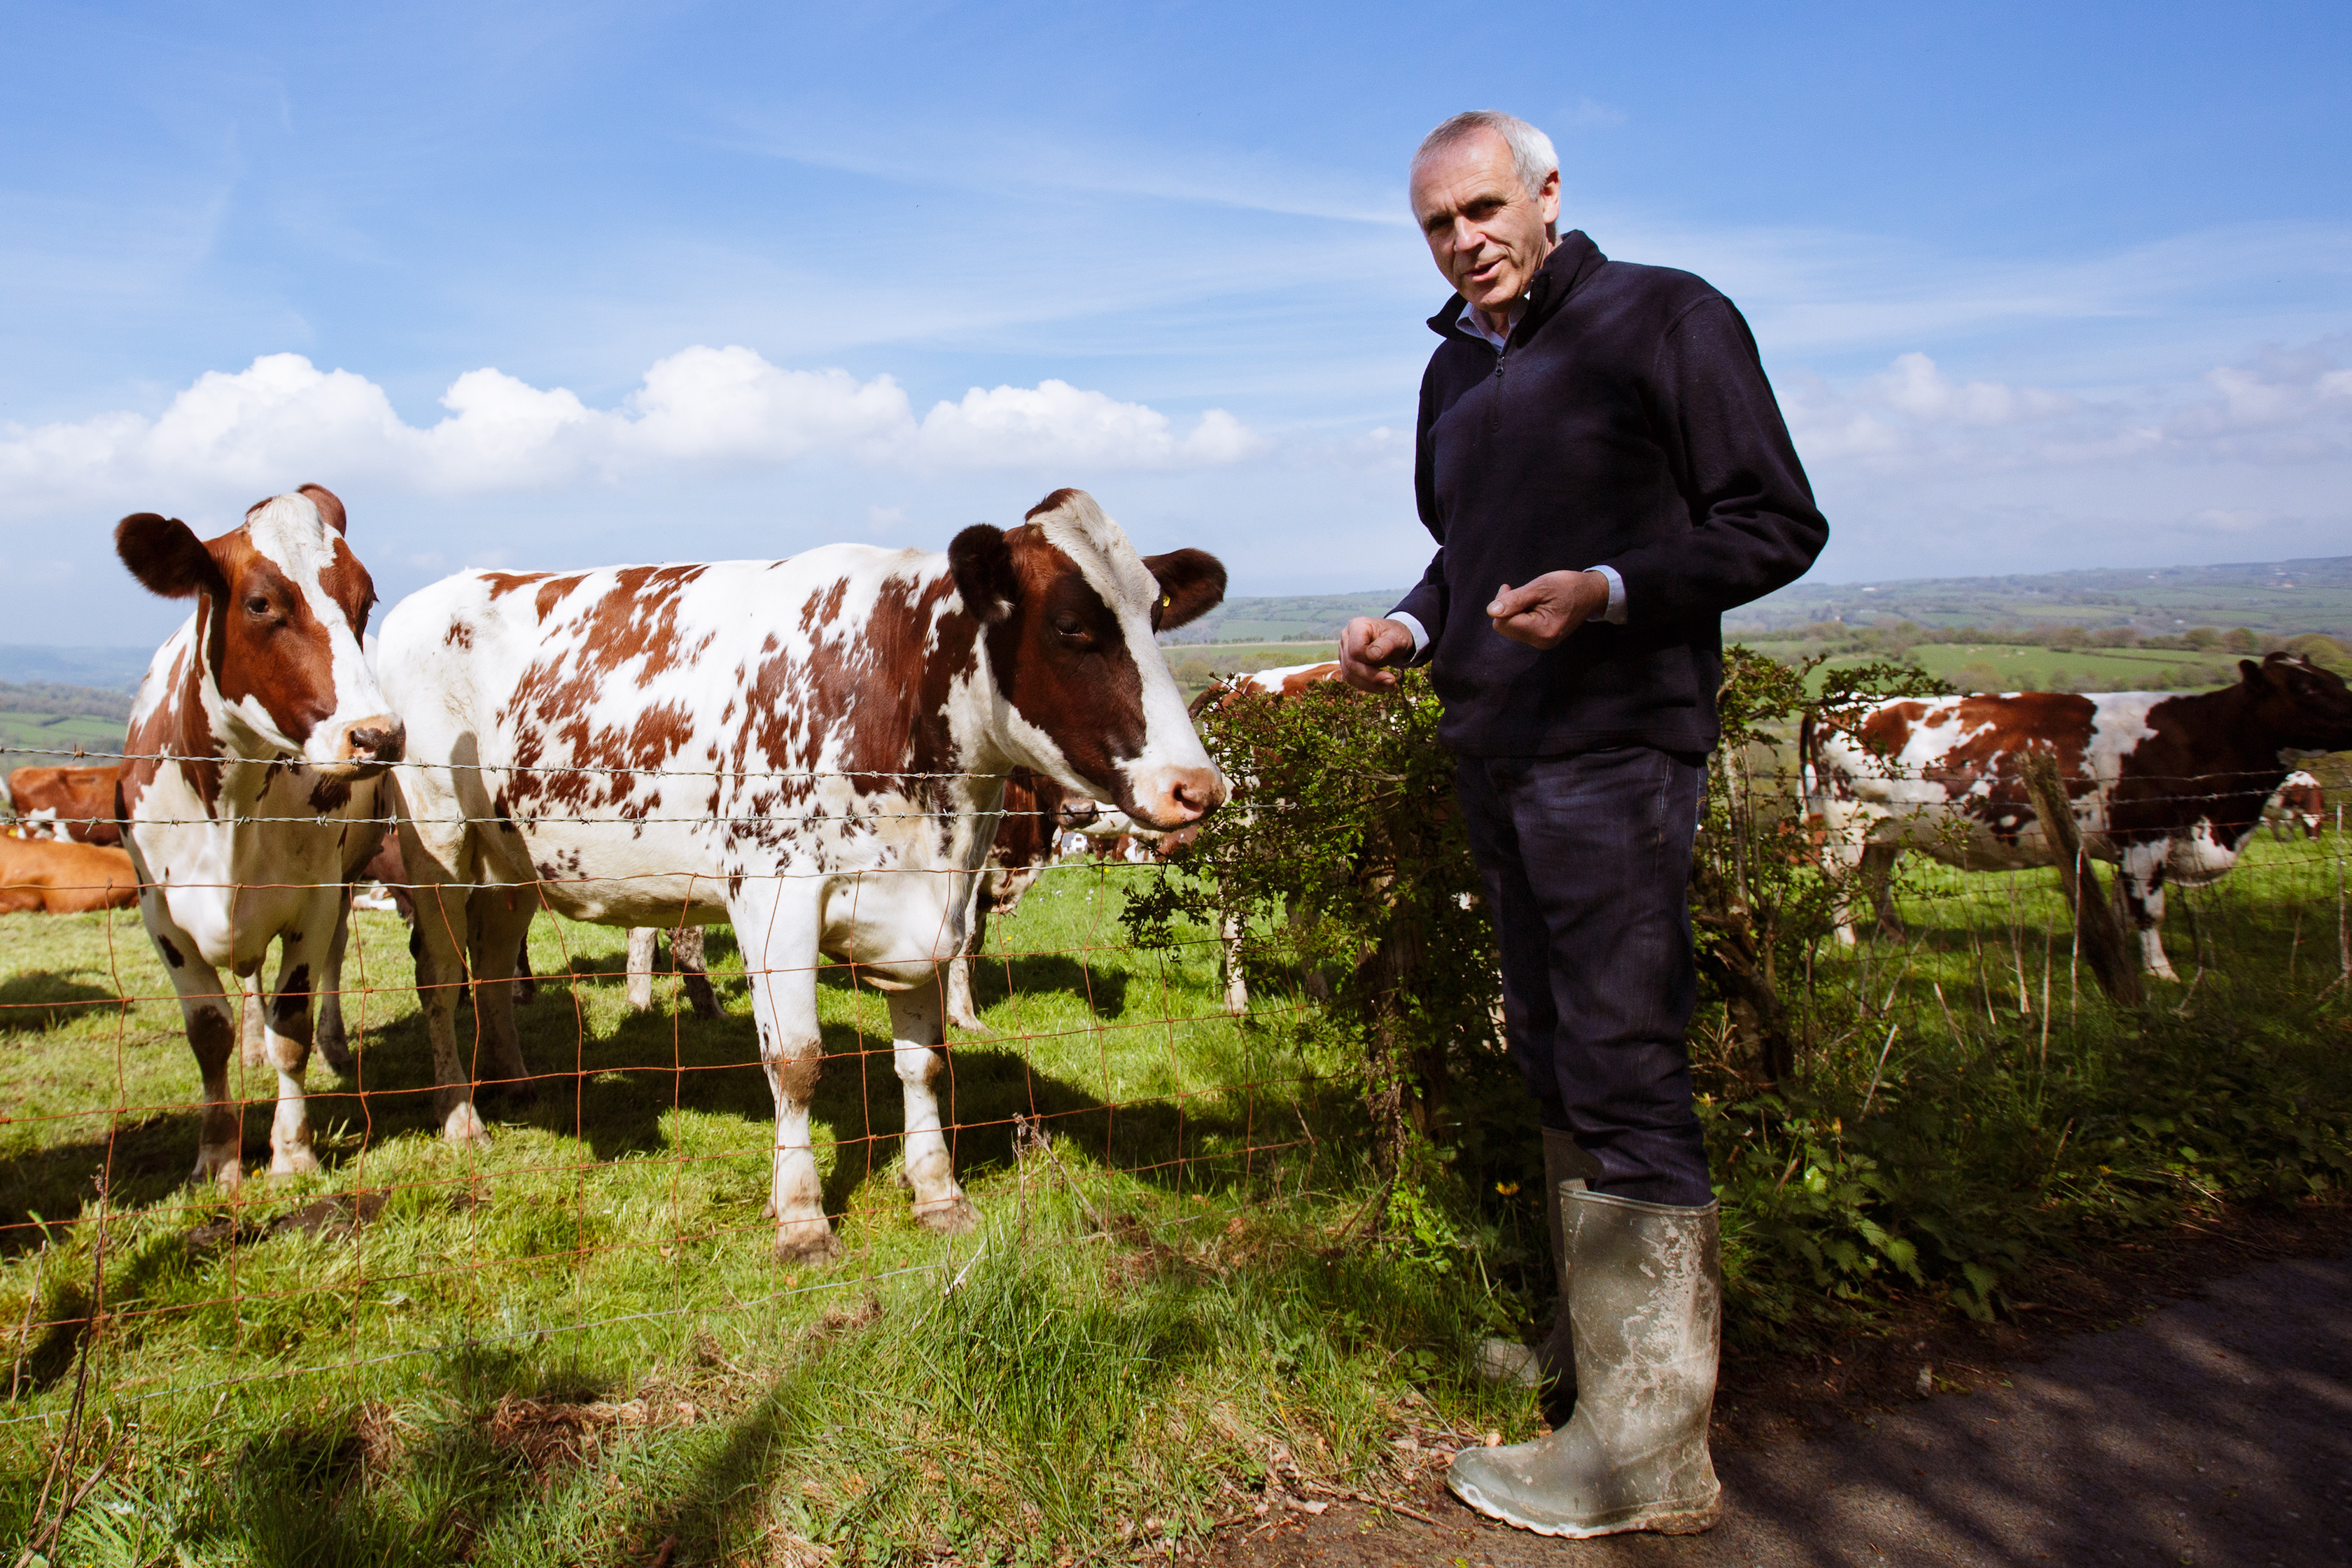 Patrick Holden living out a sustainable diet on his dairy farm in Wales.